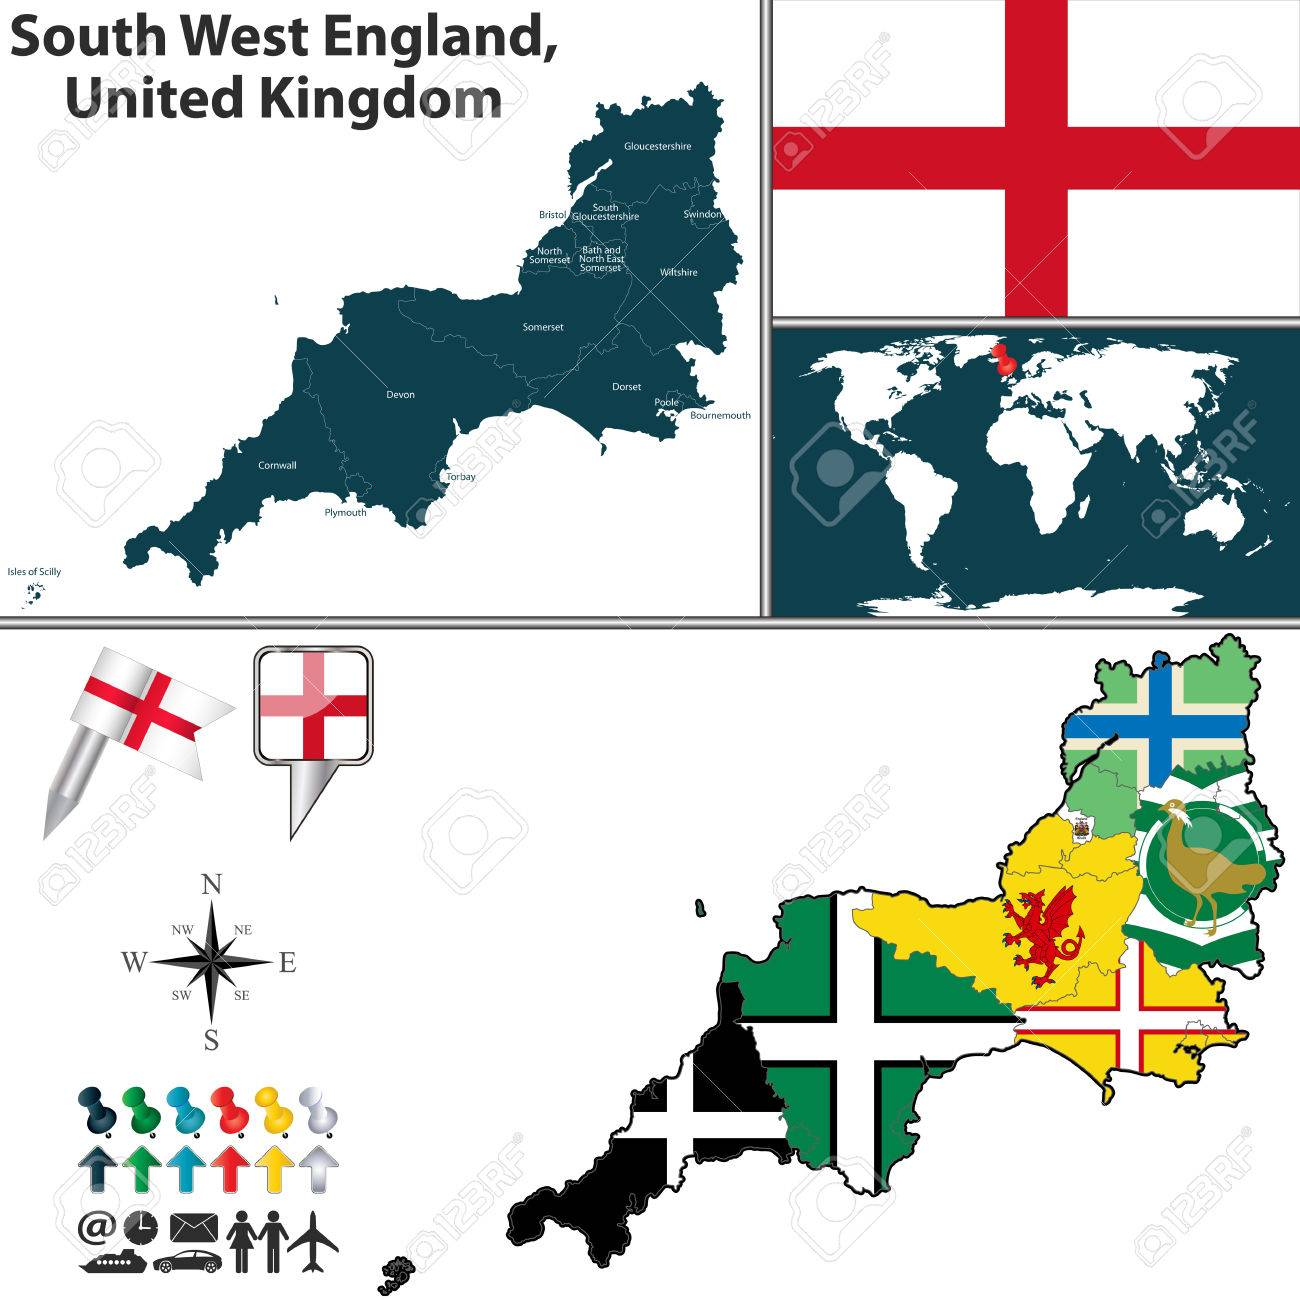 Map Of West Of England.Vector Map Of South West England United Kingdom With Regions